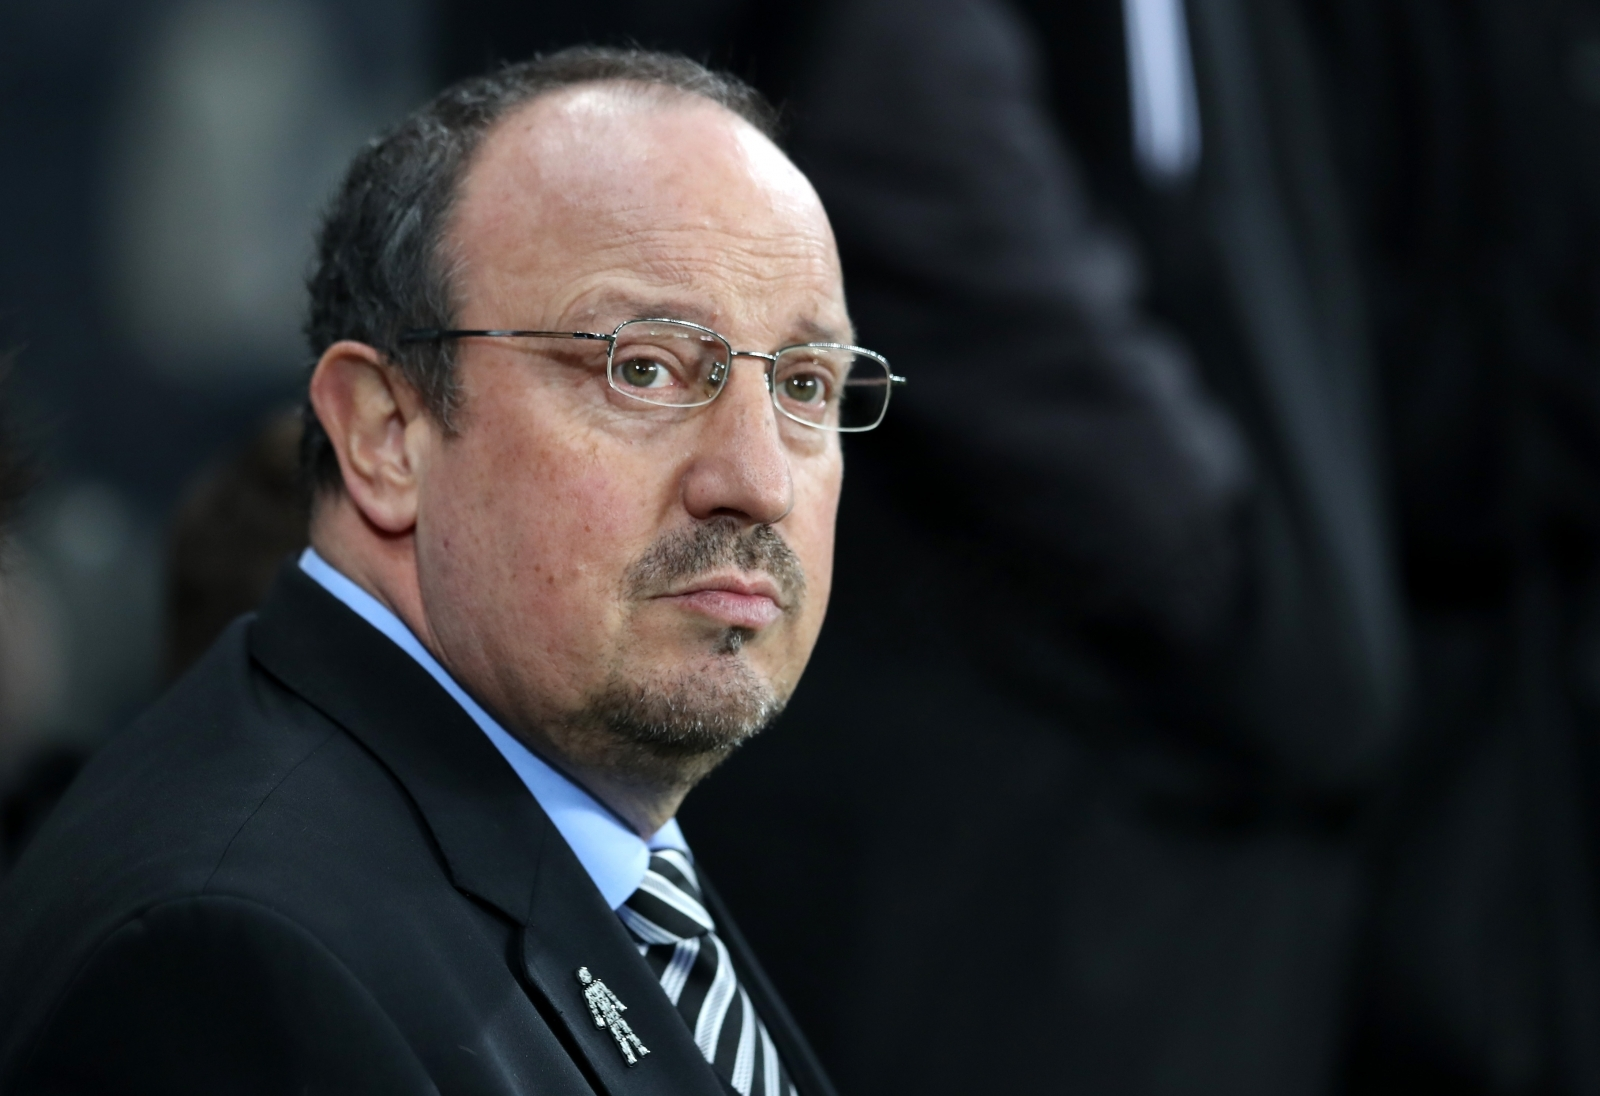 Newcastle takeover: Mike Ashley close to agreeing £300m deal to sell club